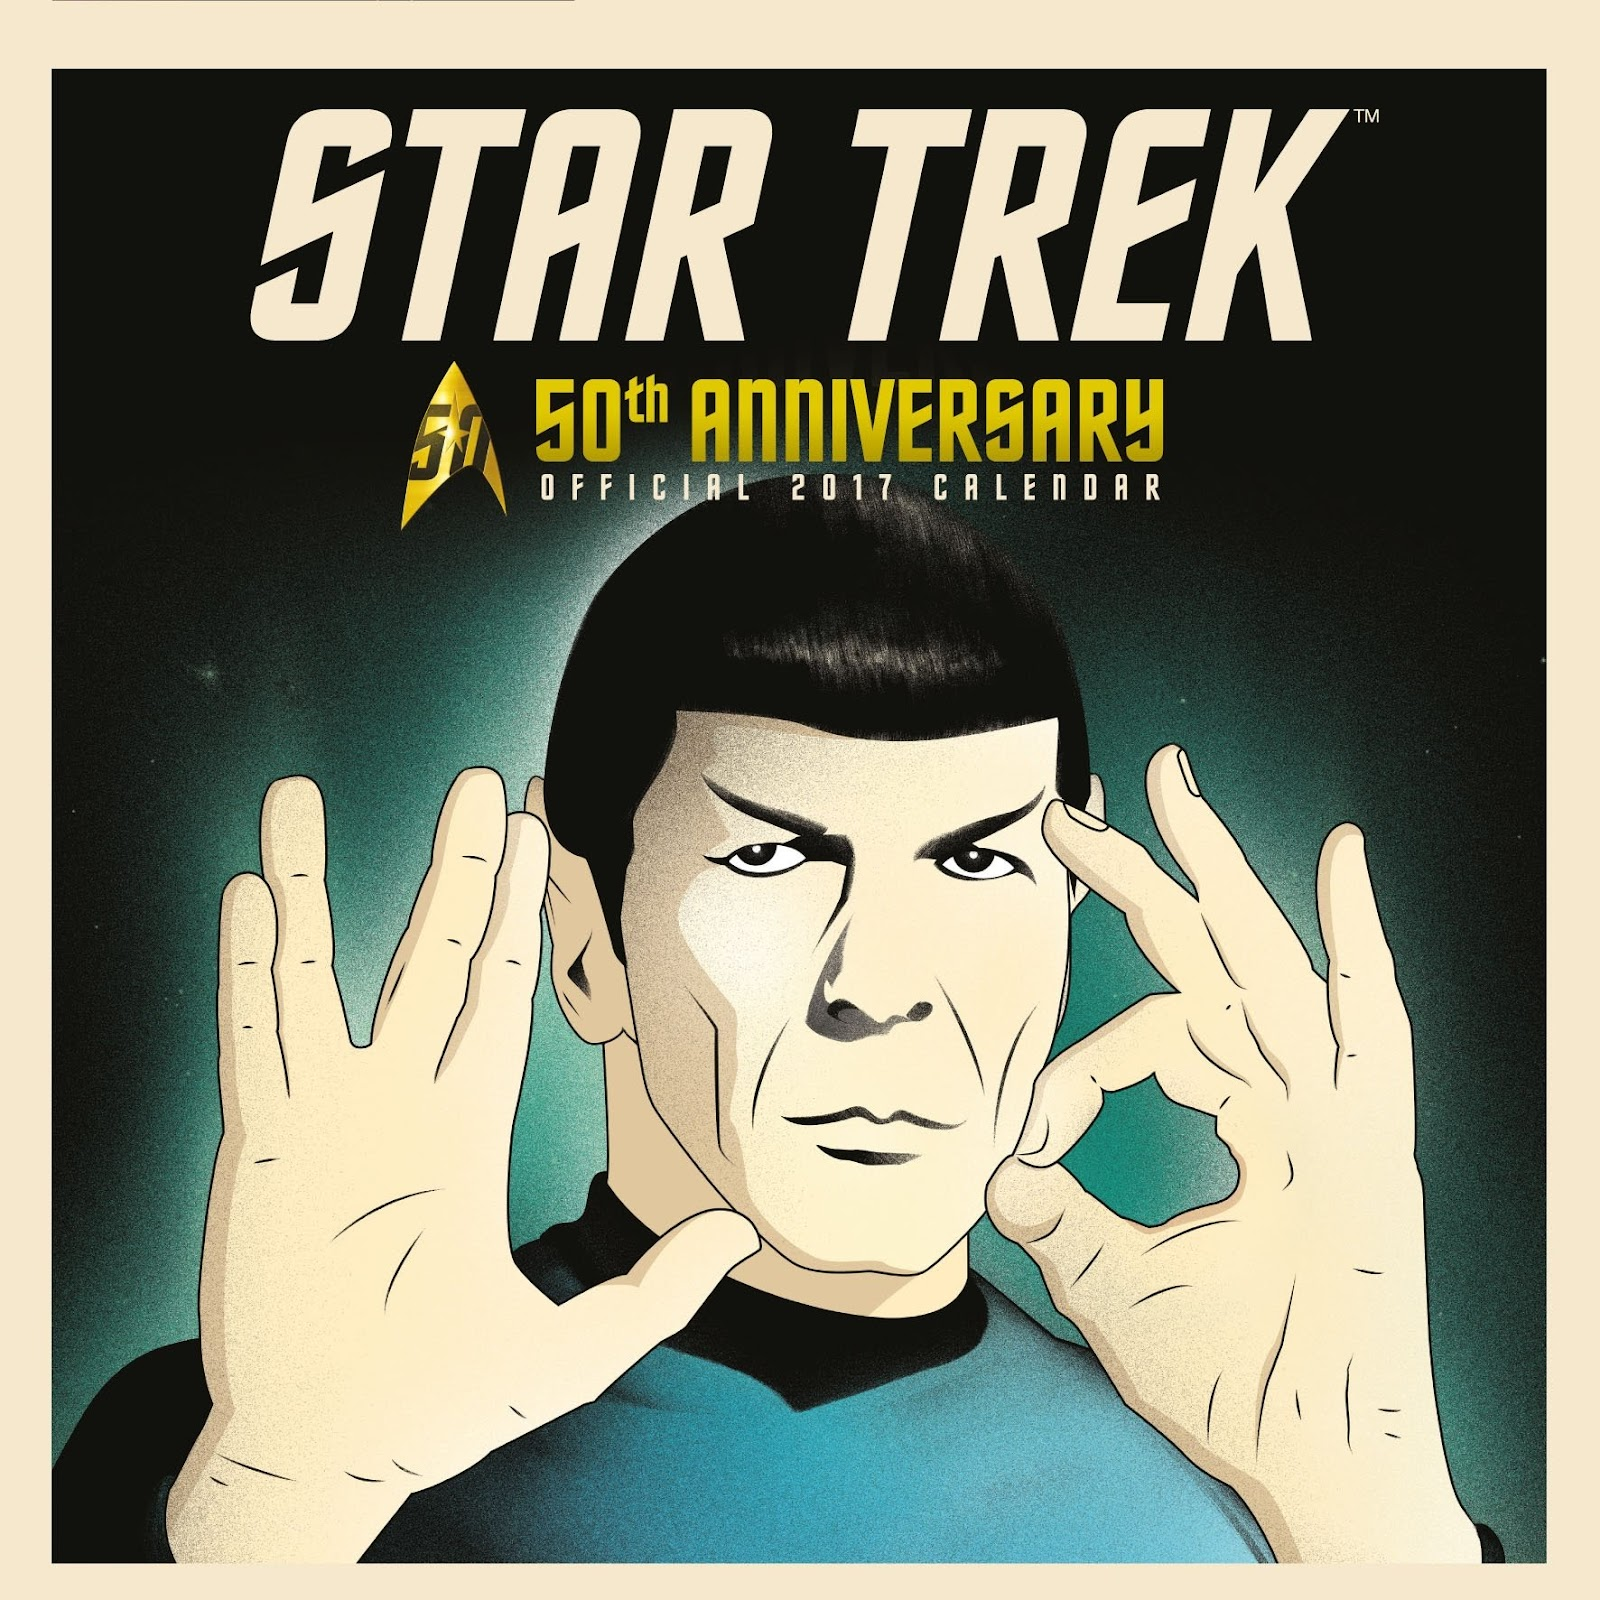 Star trek 50th anniversary date in Brisbane